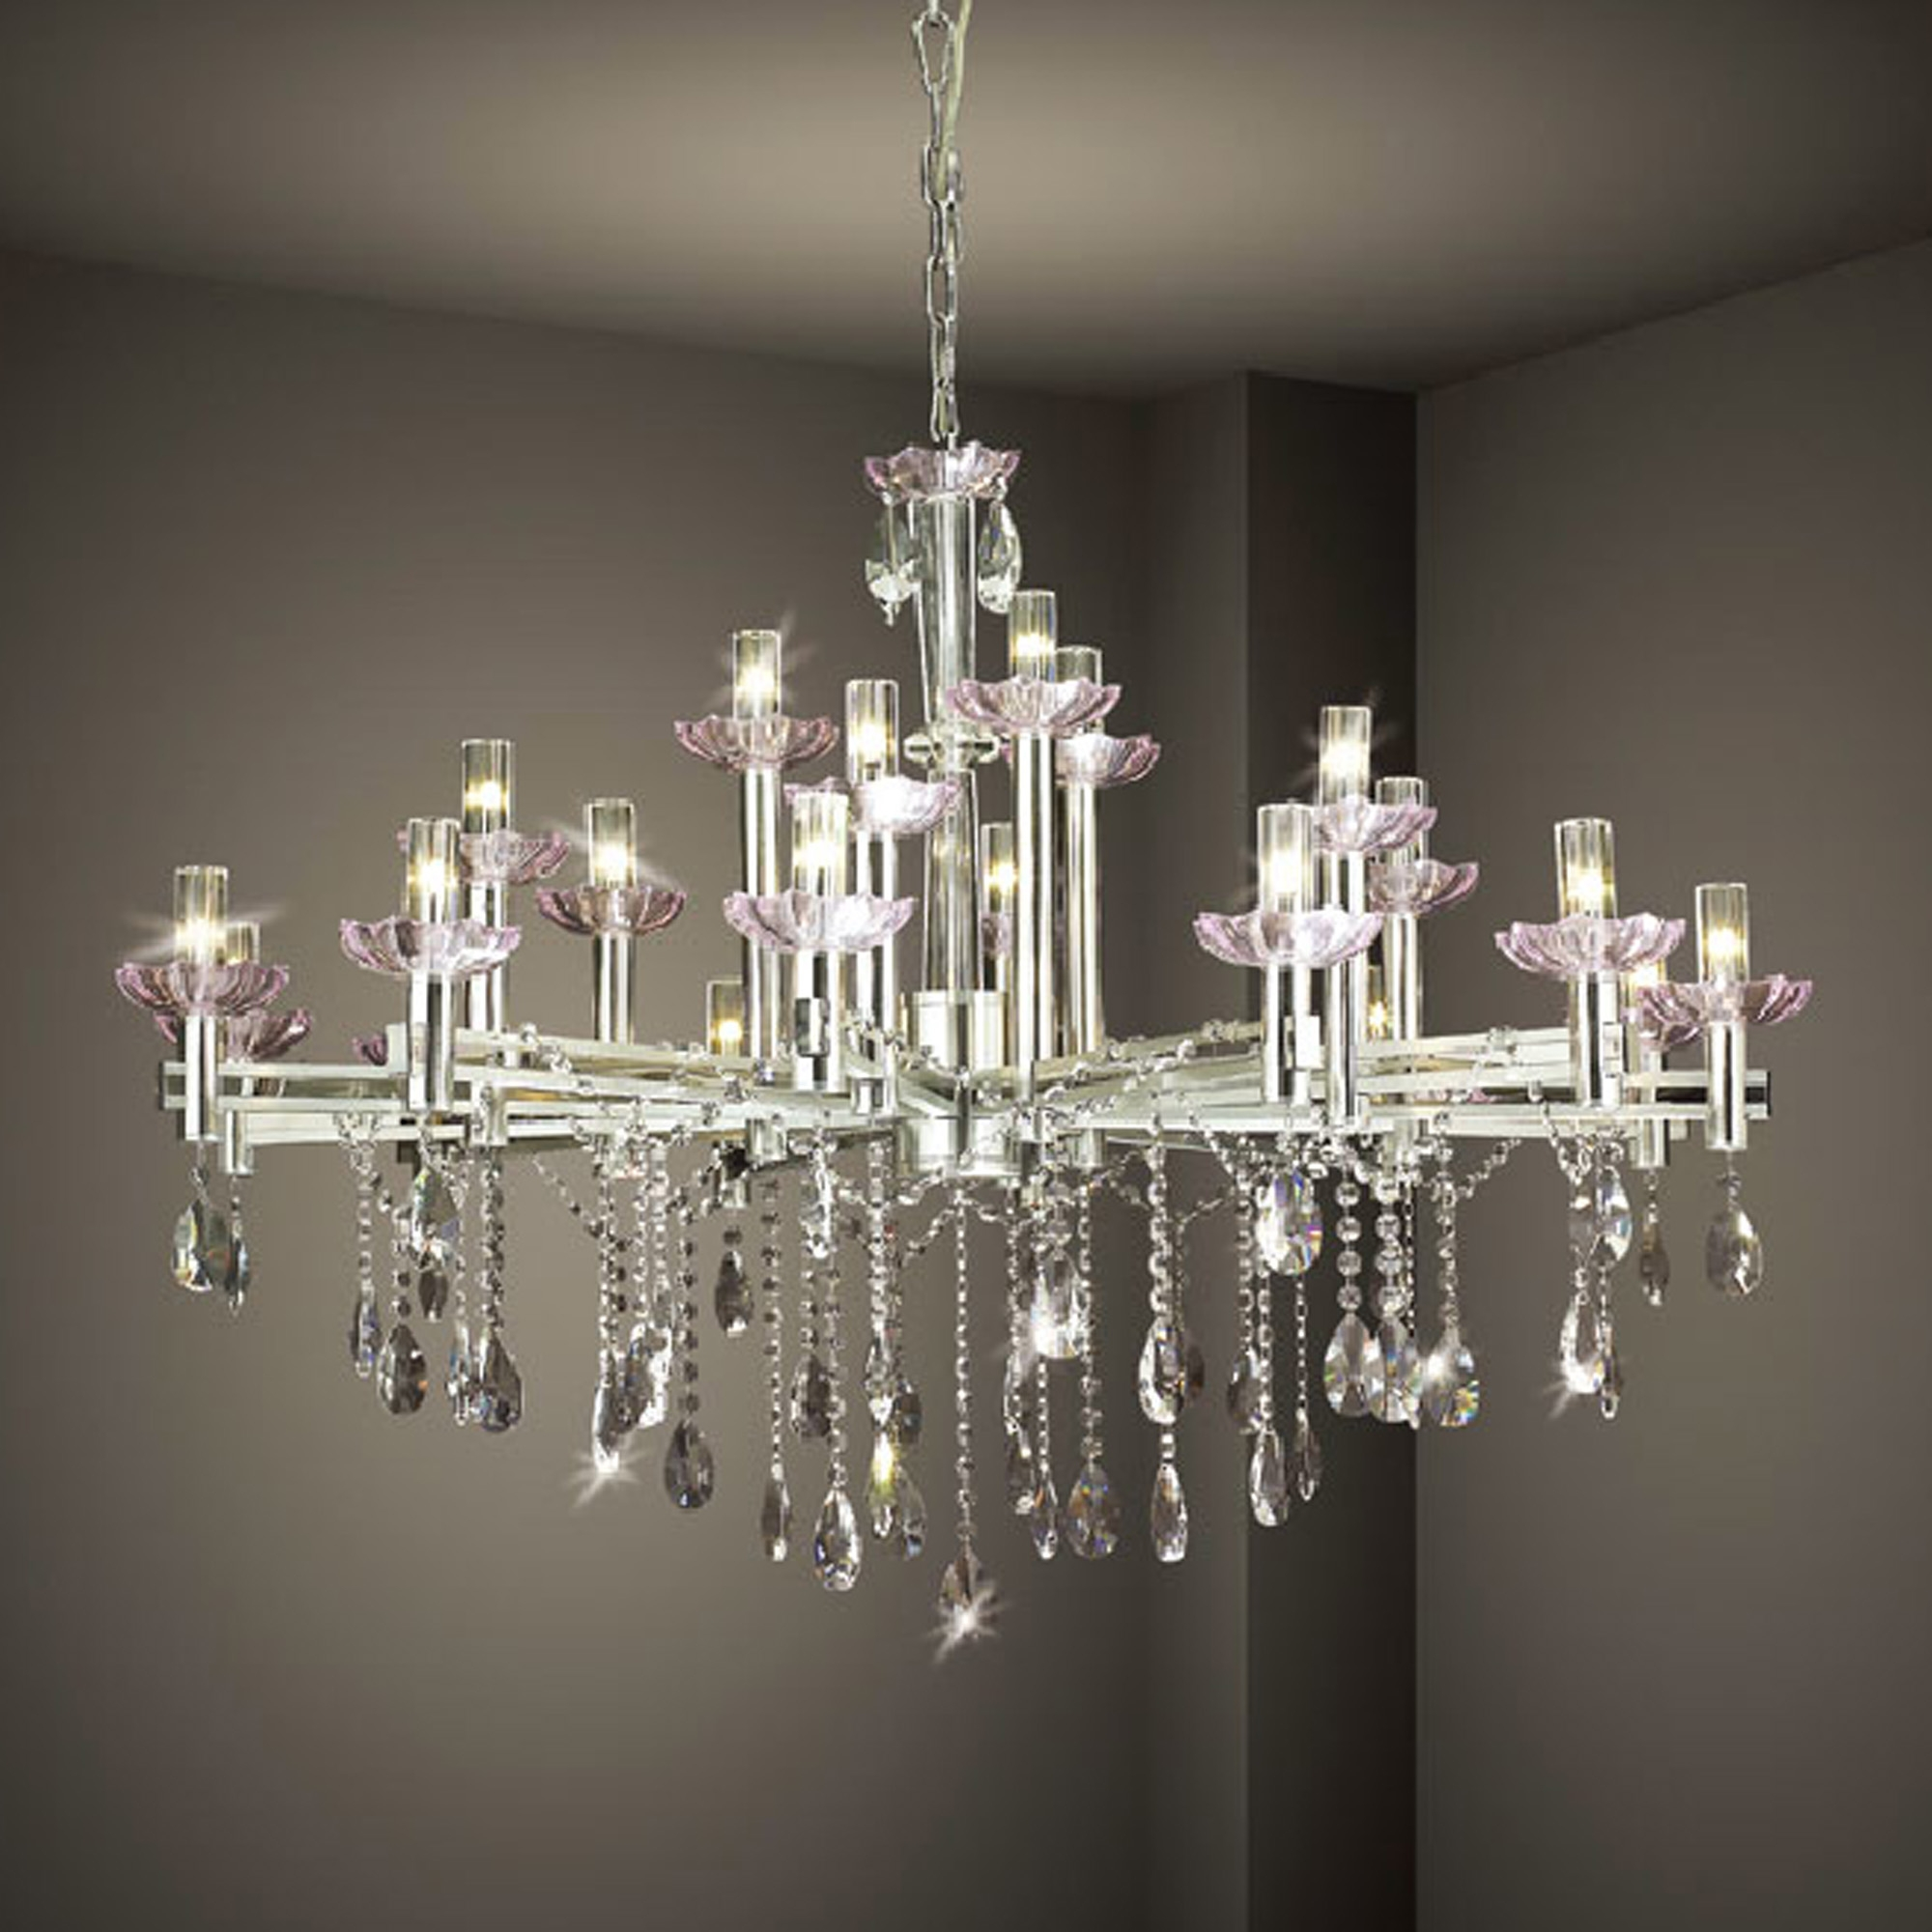 Chandelier Inspiring White Modern Chandelier White And Crystal Pertaining To Large Contemporary Chandeliers (#5 of 12)